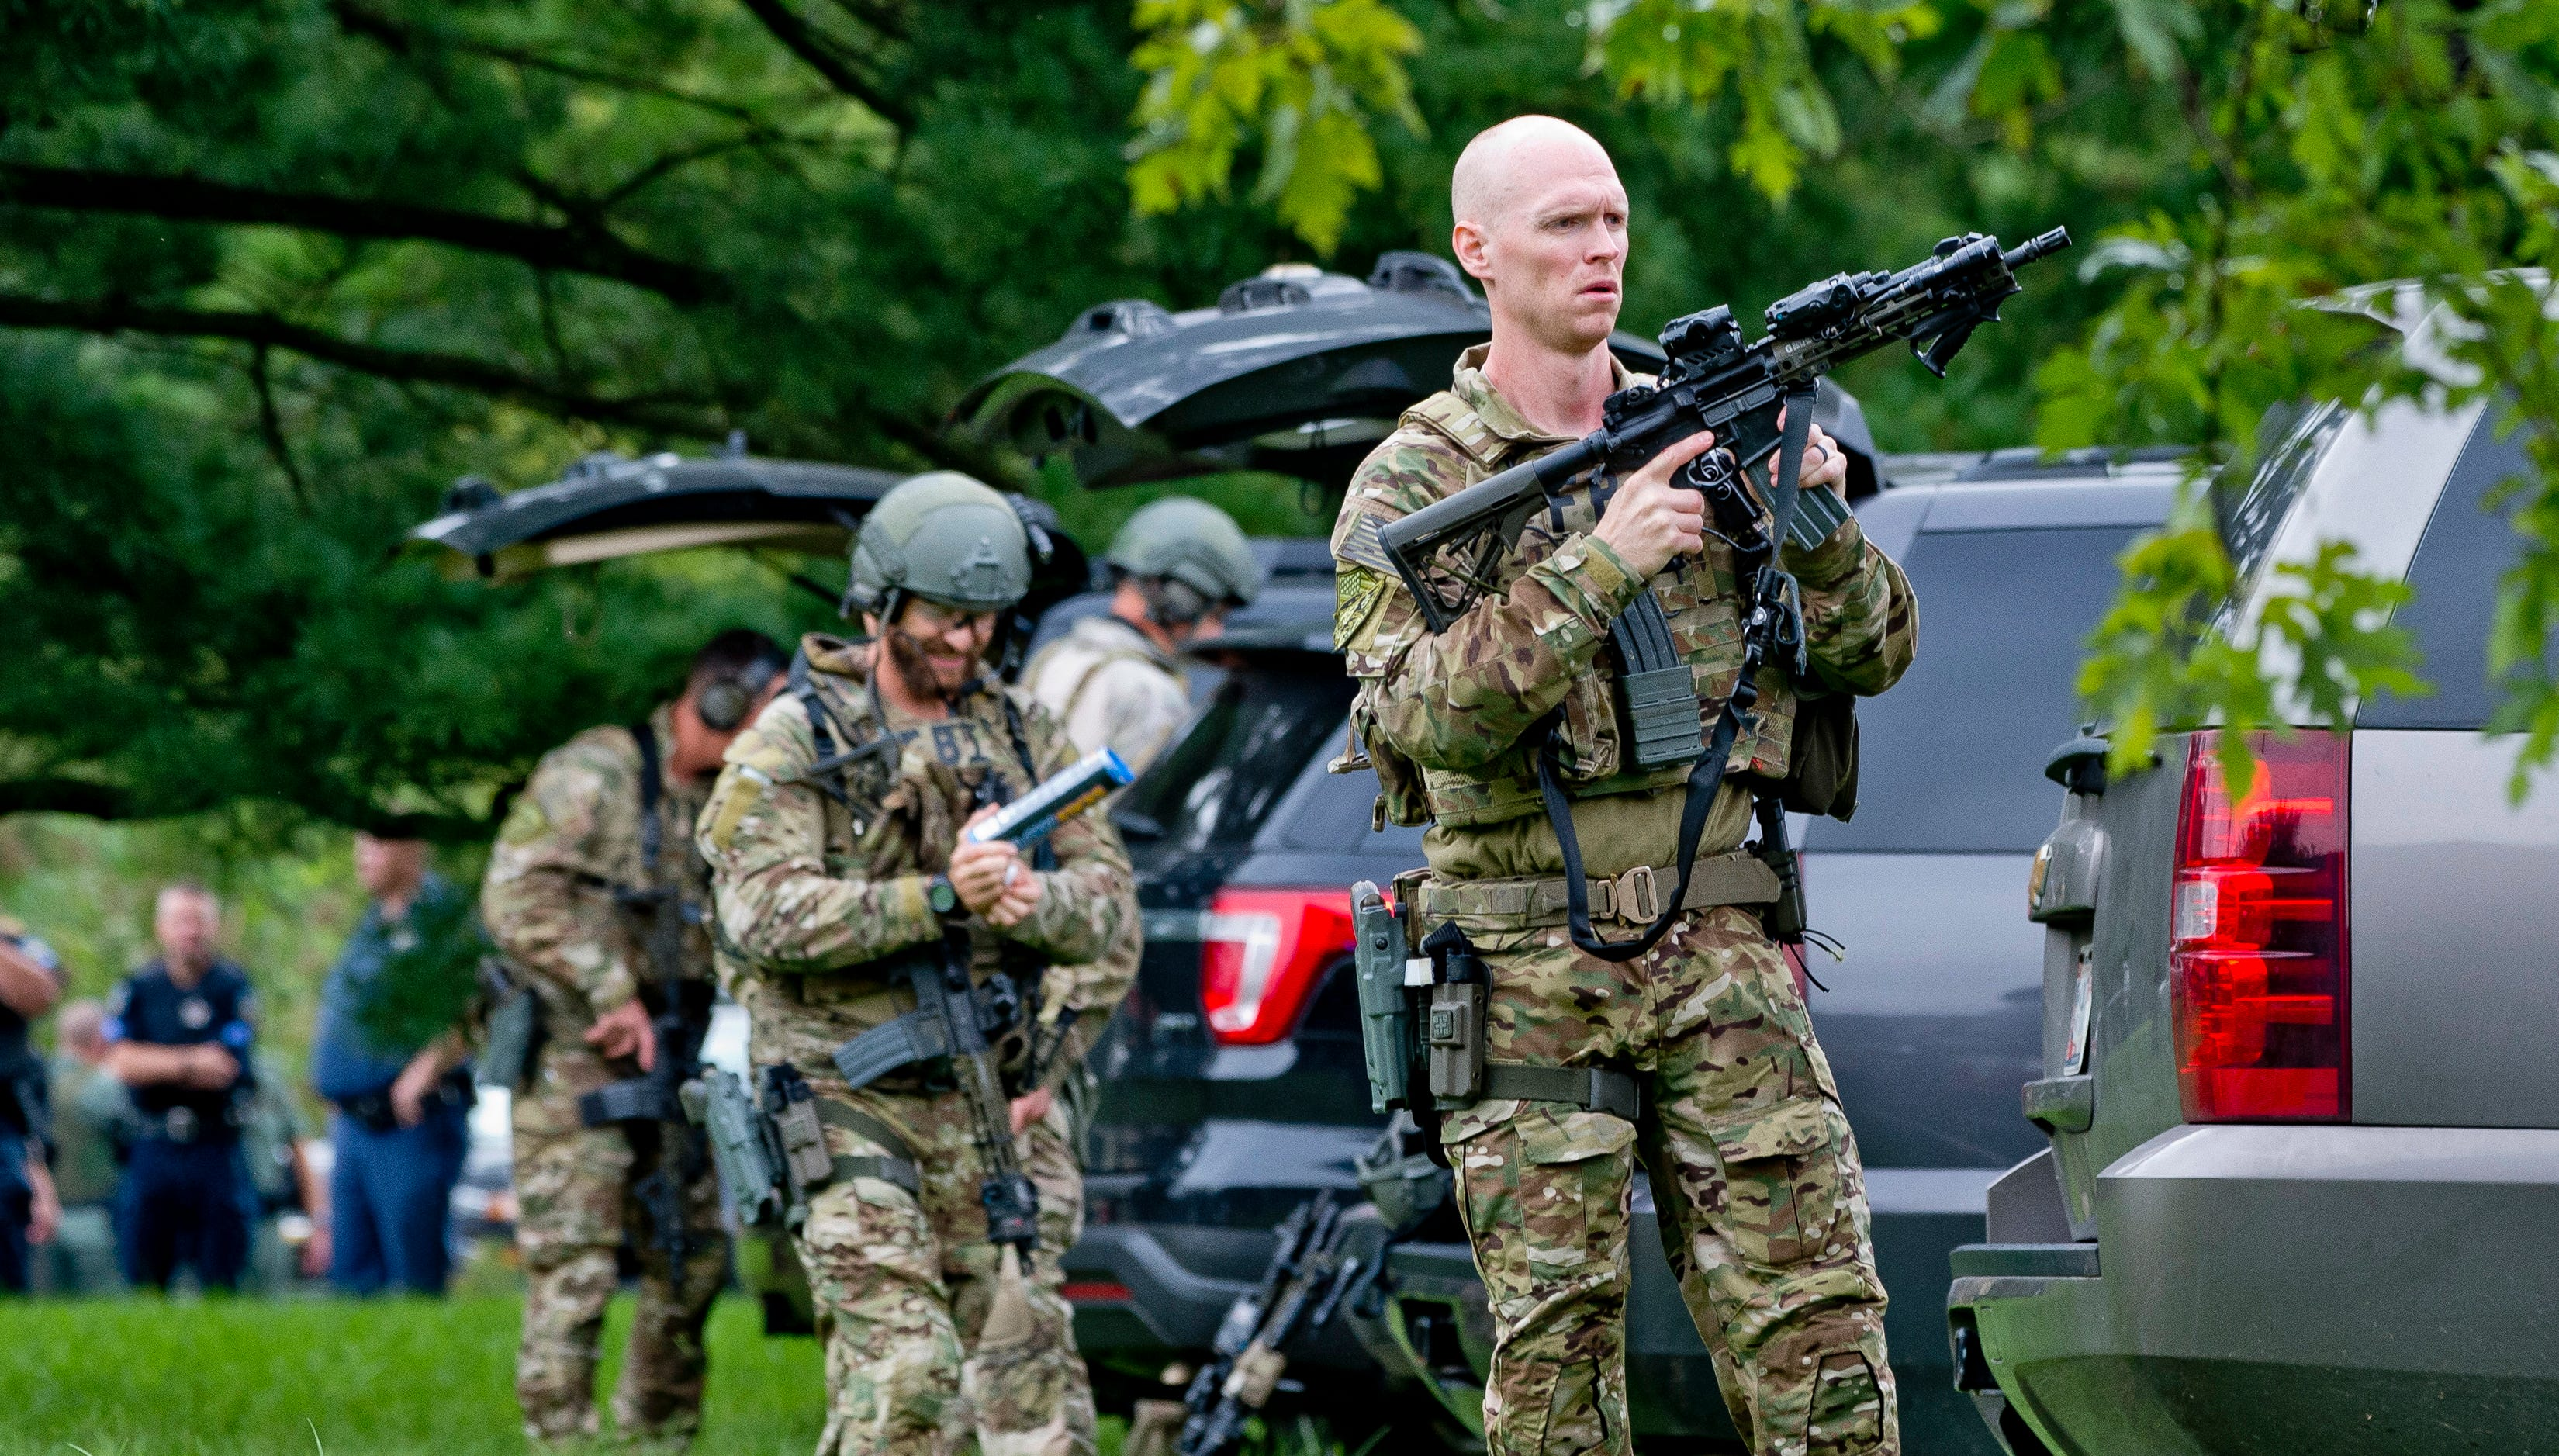 FBI tactical agents prepare as police search for a gunman who fled the scene of a shooting at a Rite Aid Distribution Center in Aberdeen, Maryland, USA, Sept. 20, 2018.